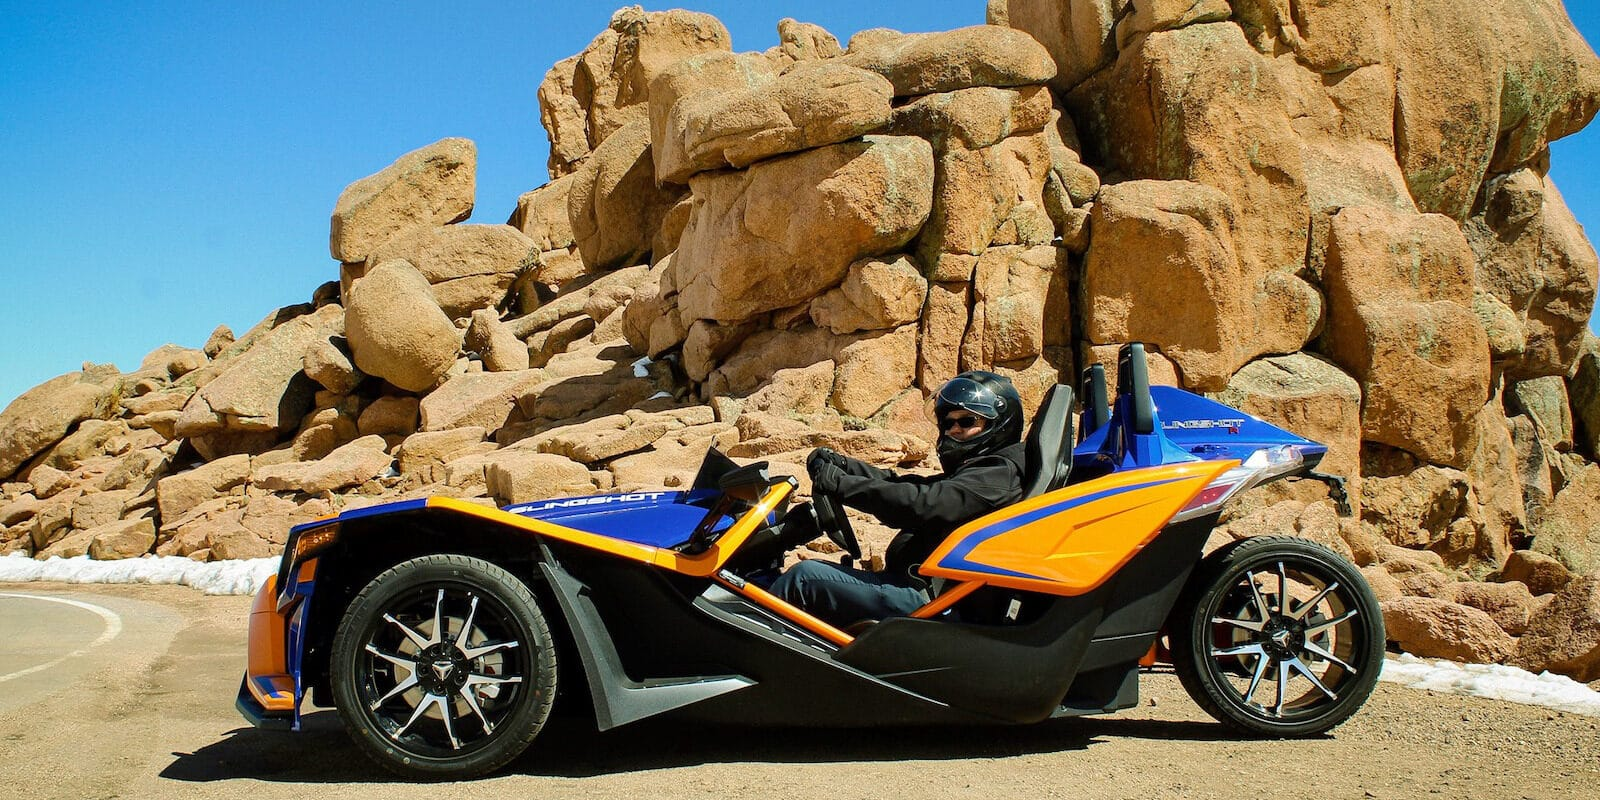 Image of a Slingshot in Colorado